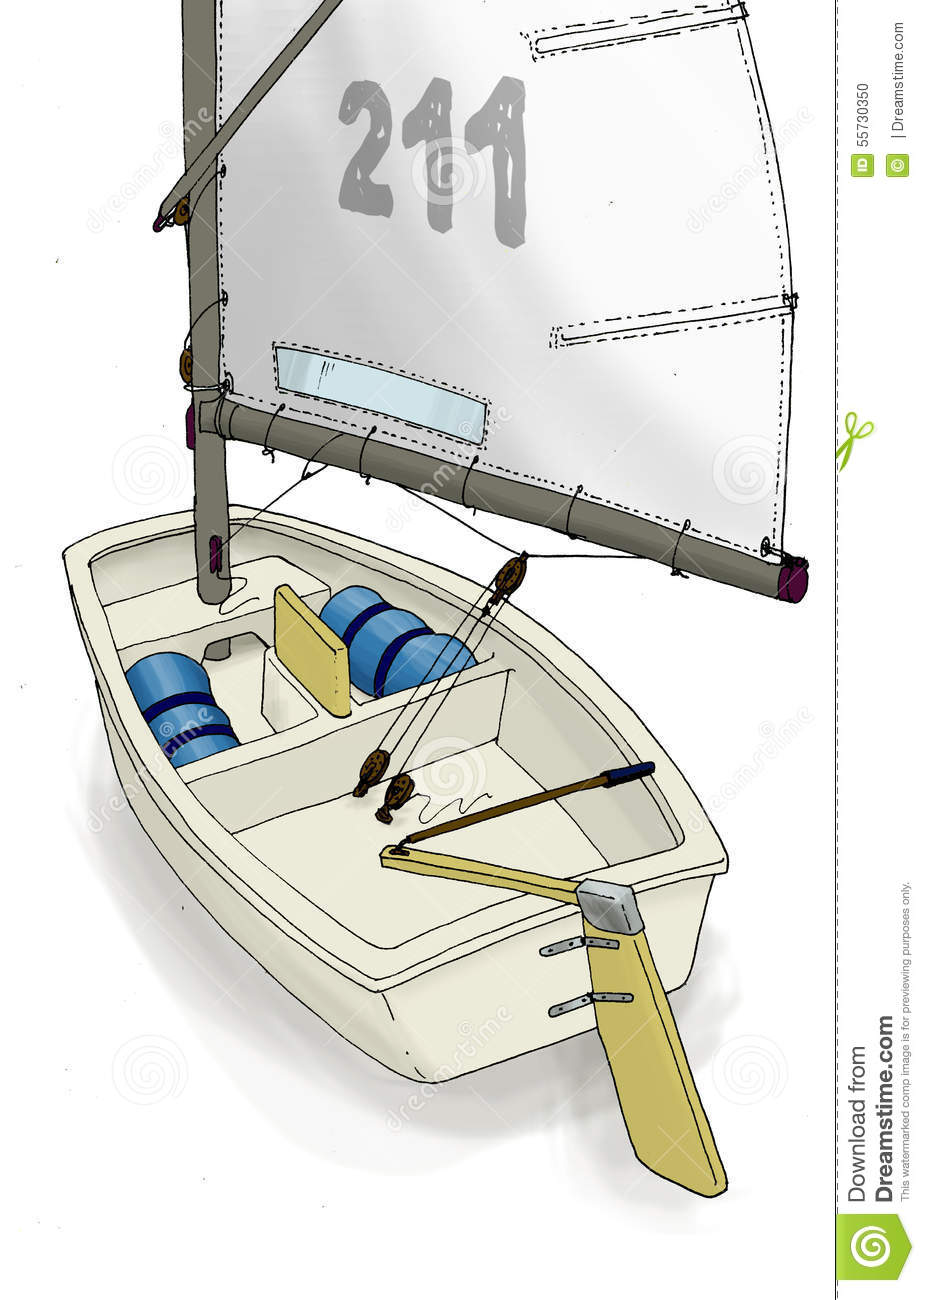 Illustration of the Optimist, dinghy Sailboat. Technical drawing with ...